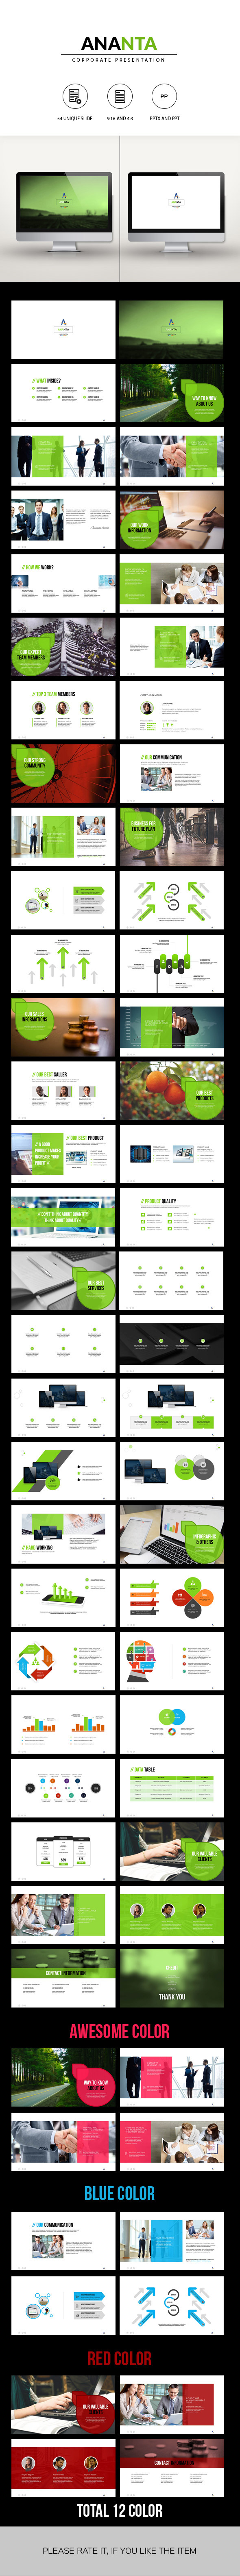 ANANTA | Corporate Powerpoint Template